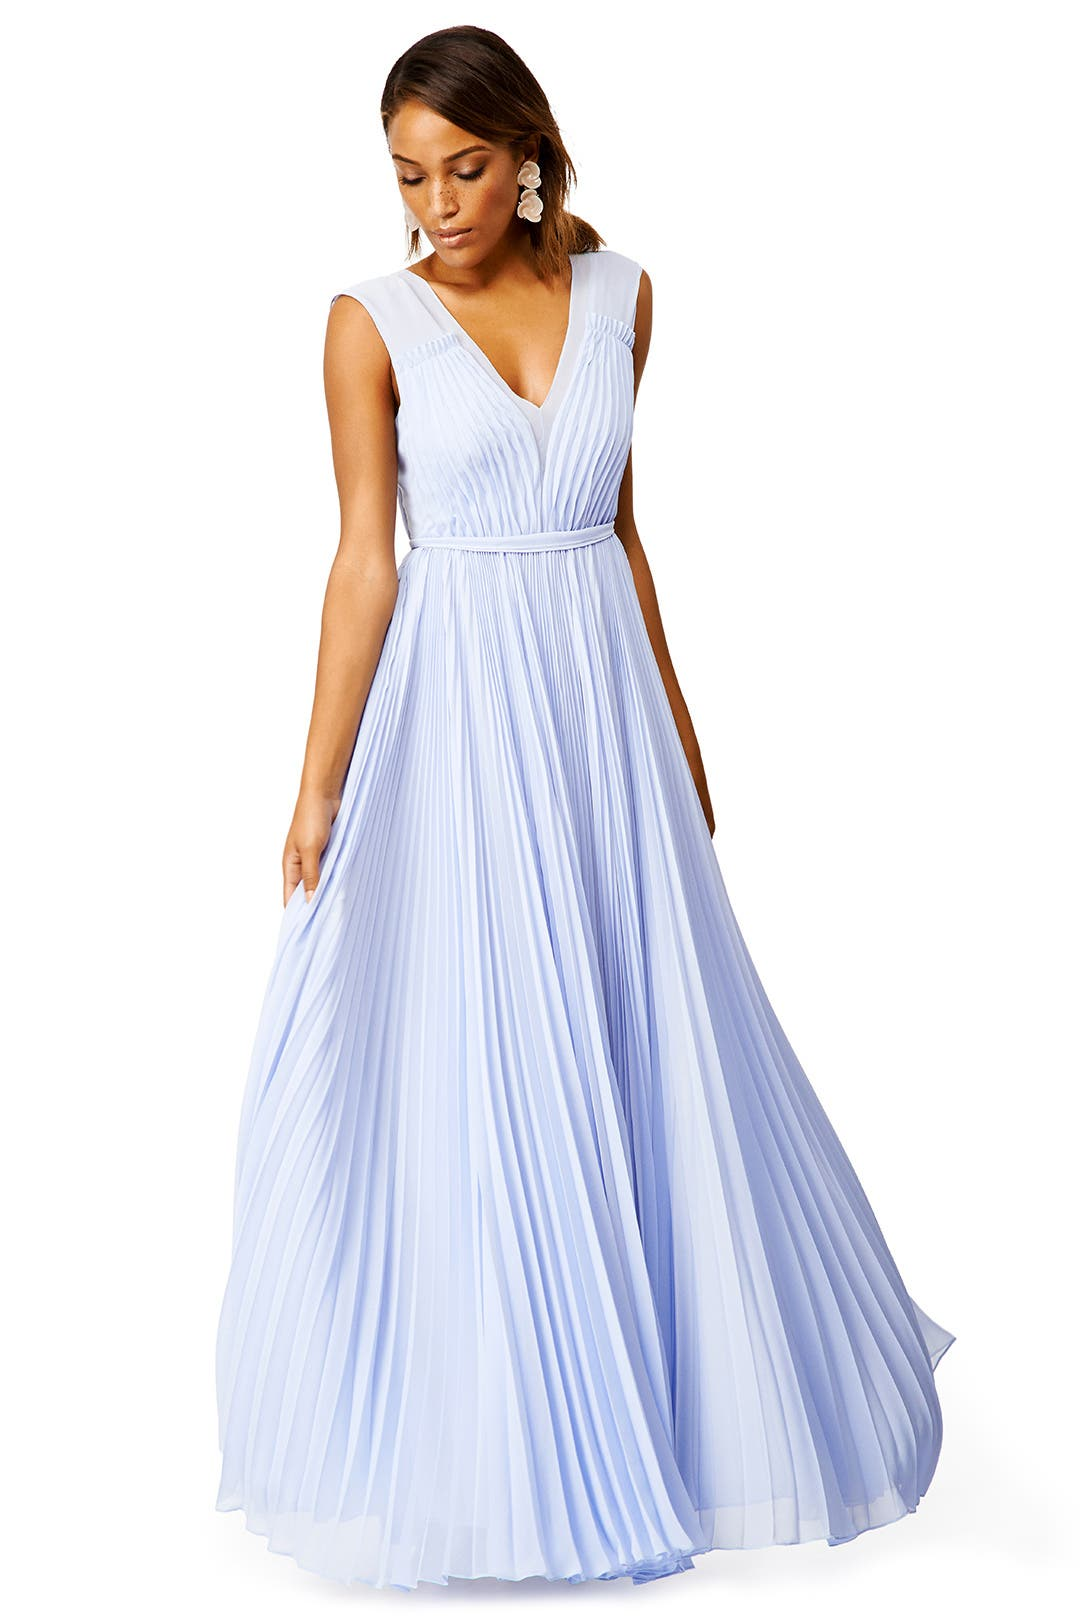 Periwinkle Pleats Gown by Rebecca Taylor for $230 | Rent the Runway